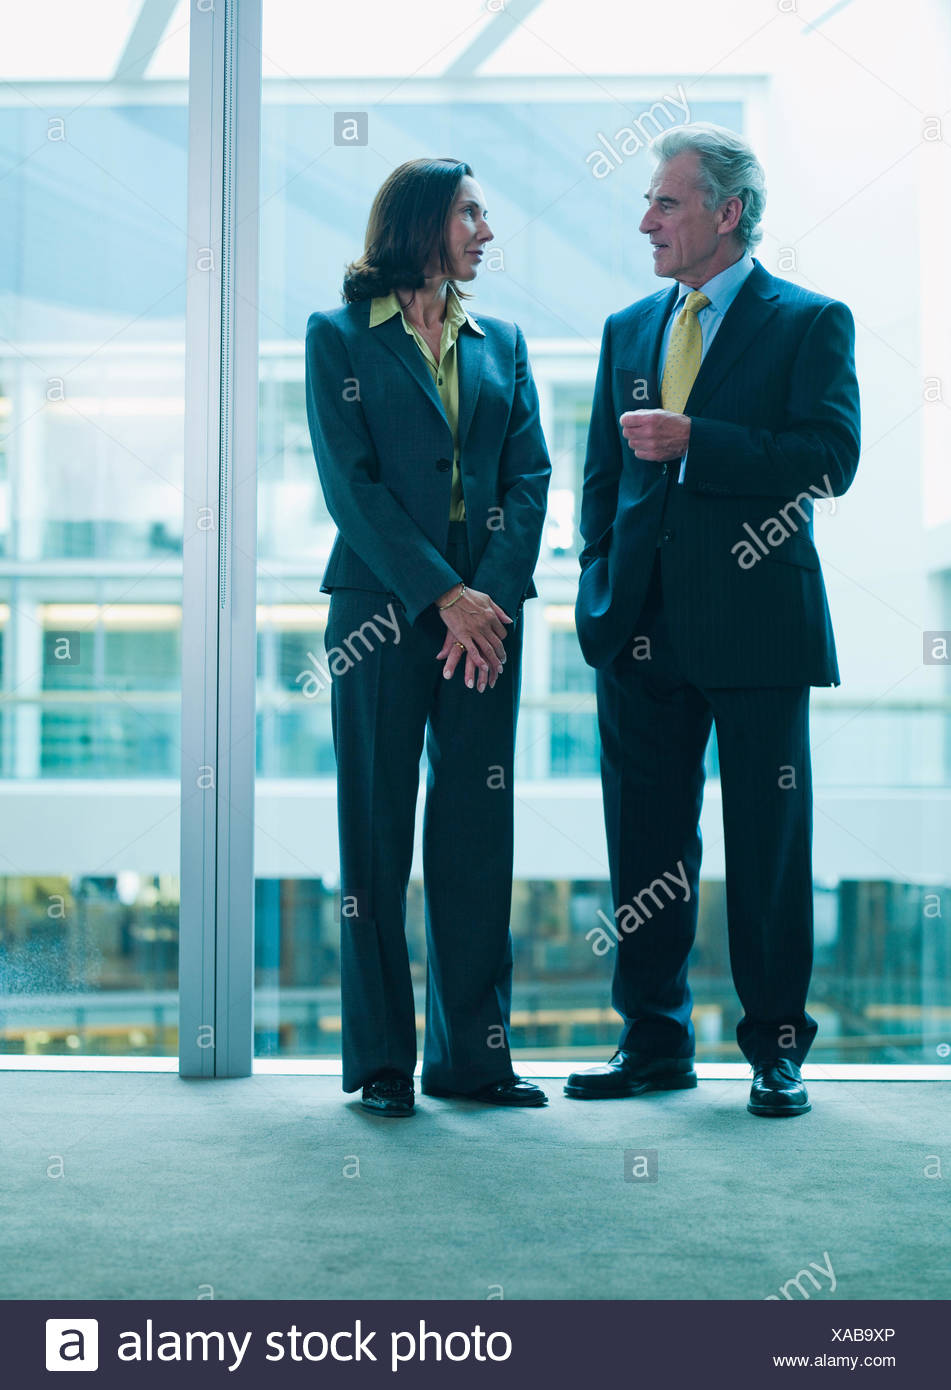 Business people talking near glass wall in office - Stock Image